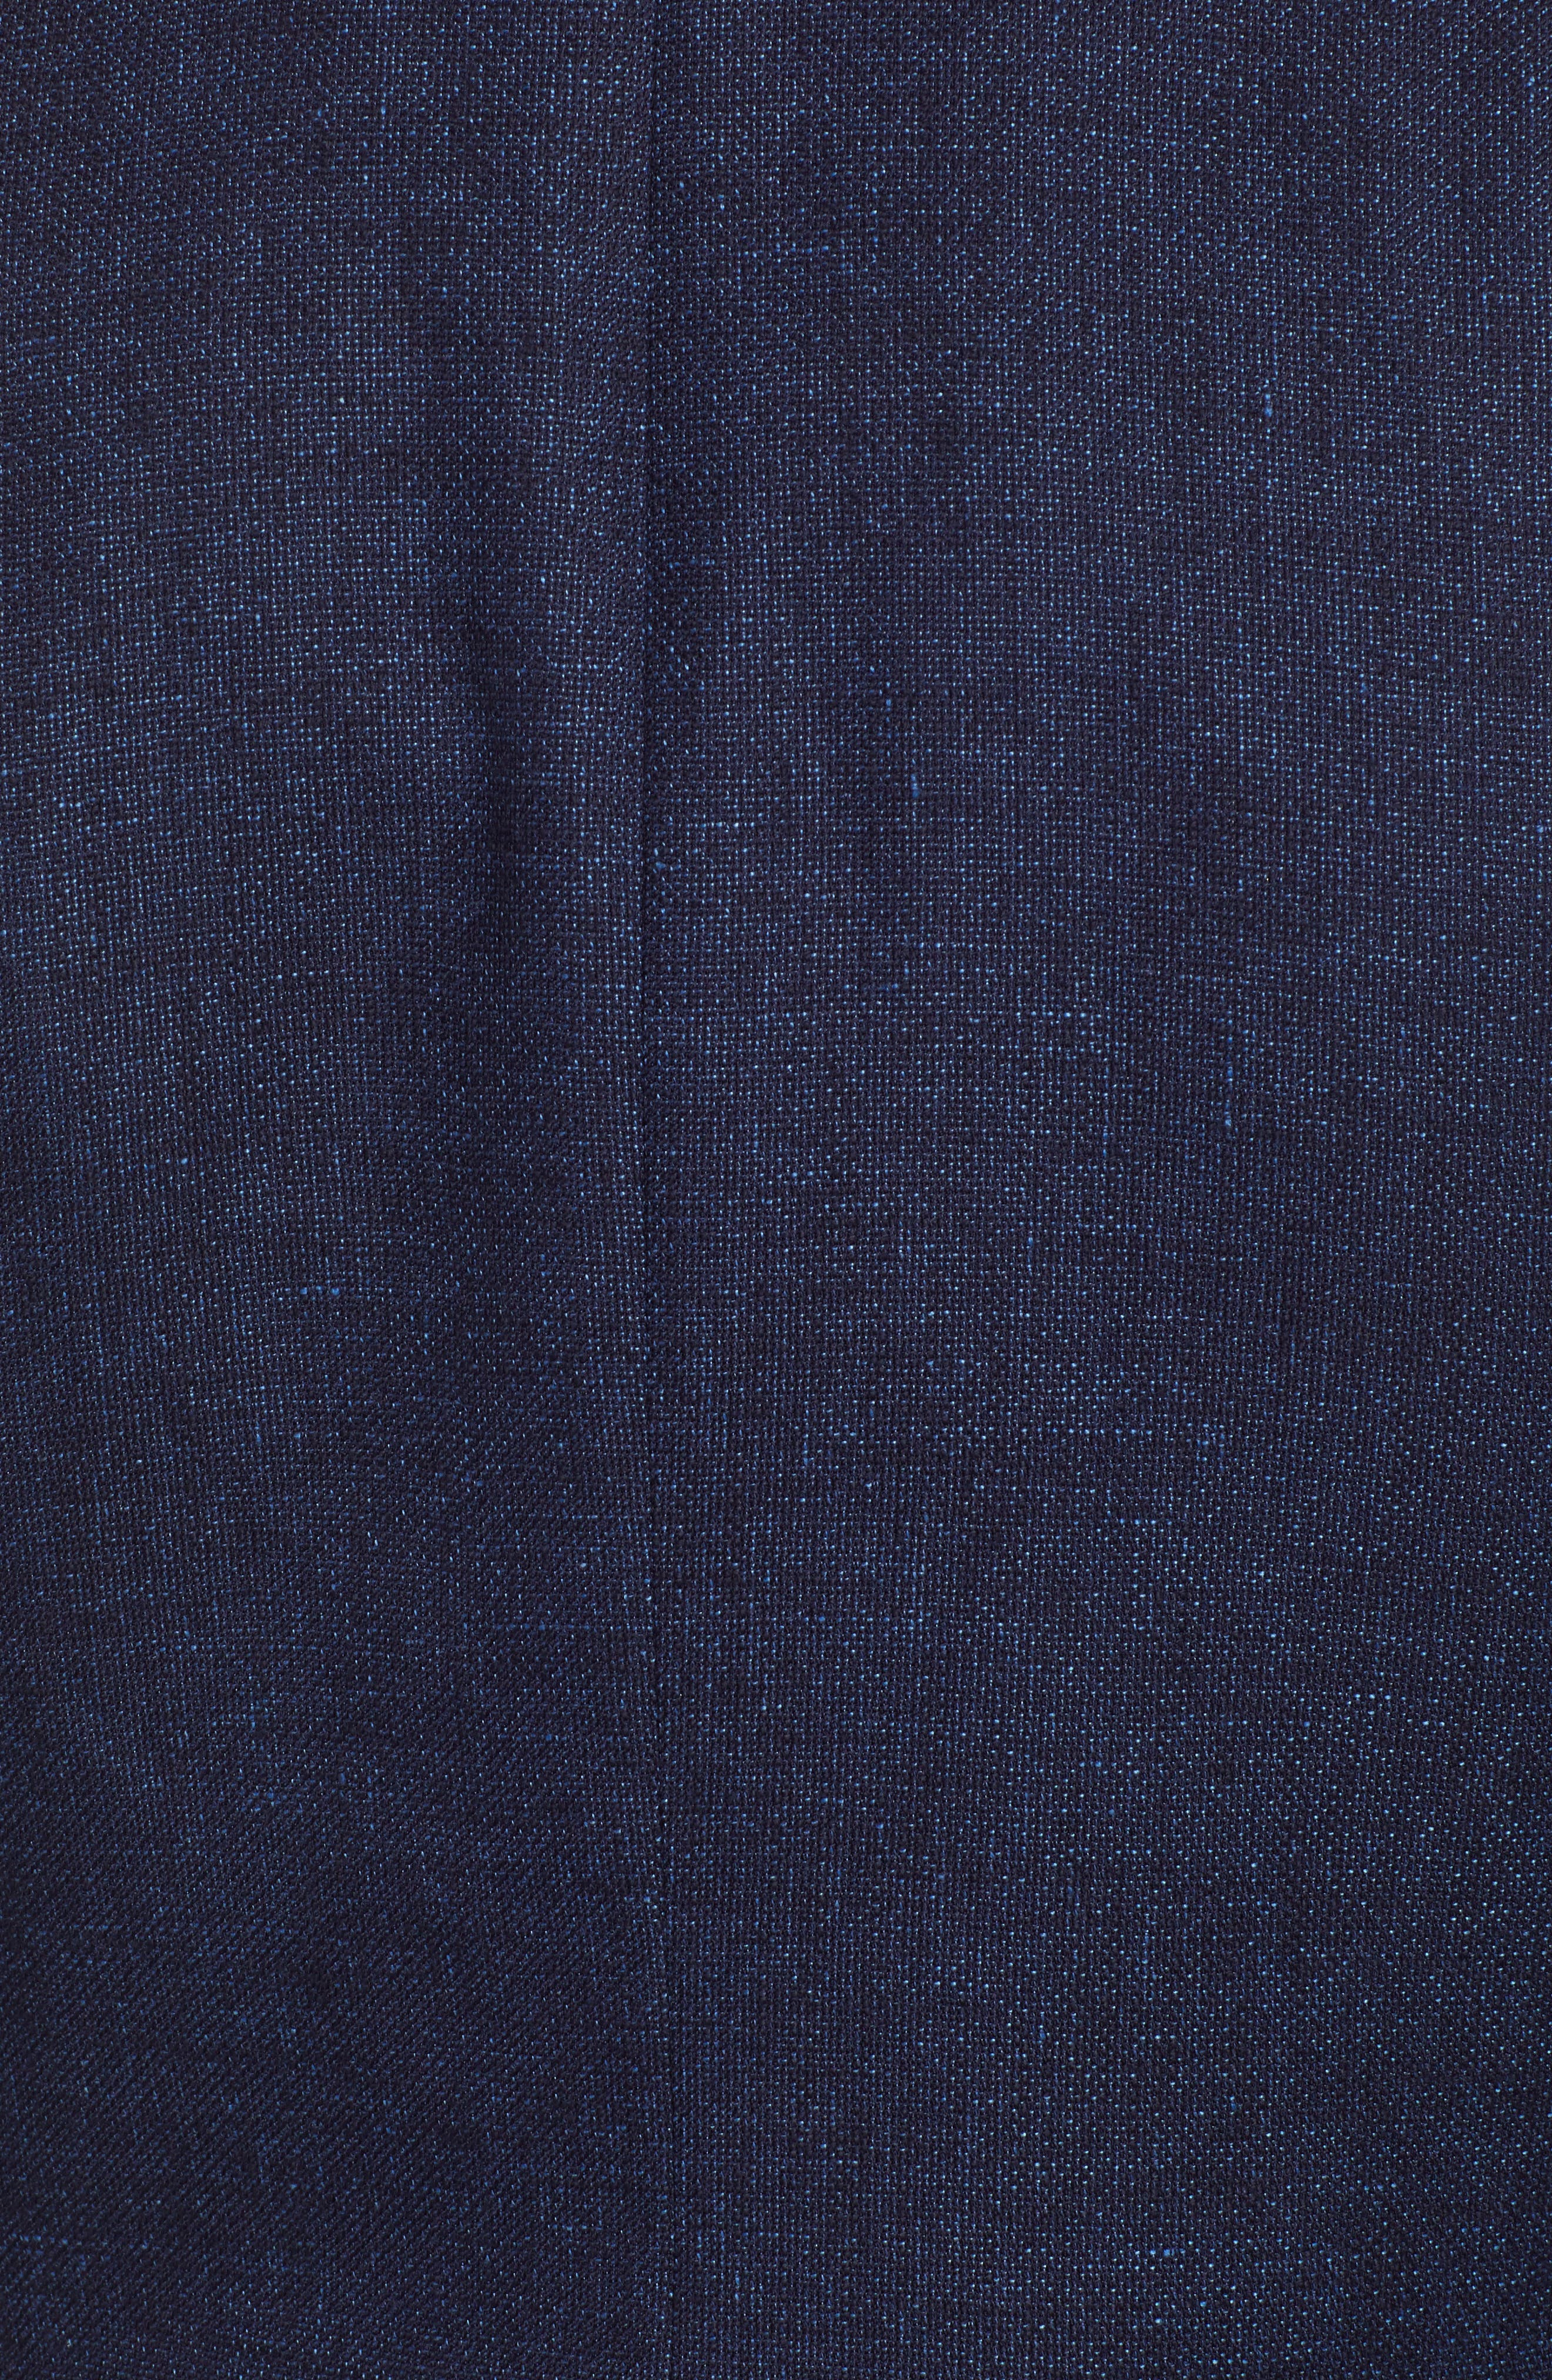 Downhill Tailored Wool Sport Coat,                             Alternate thumbnail 6, color,                             NAVY